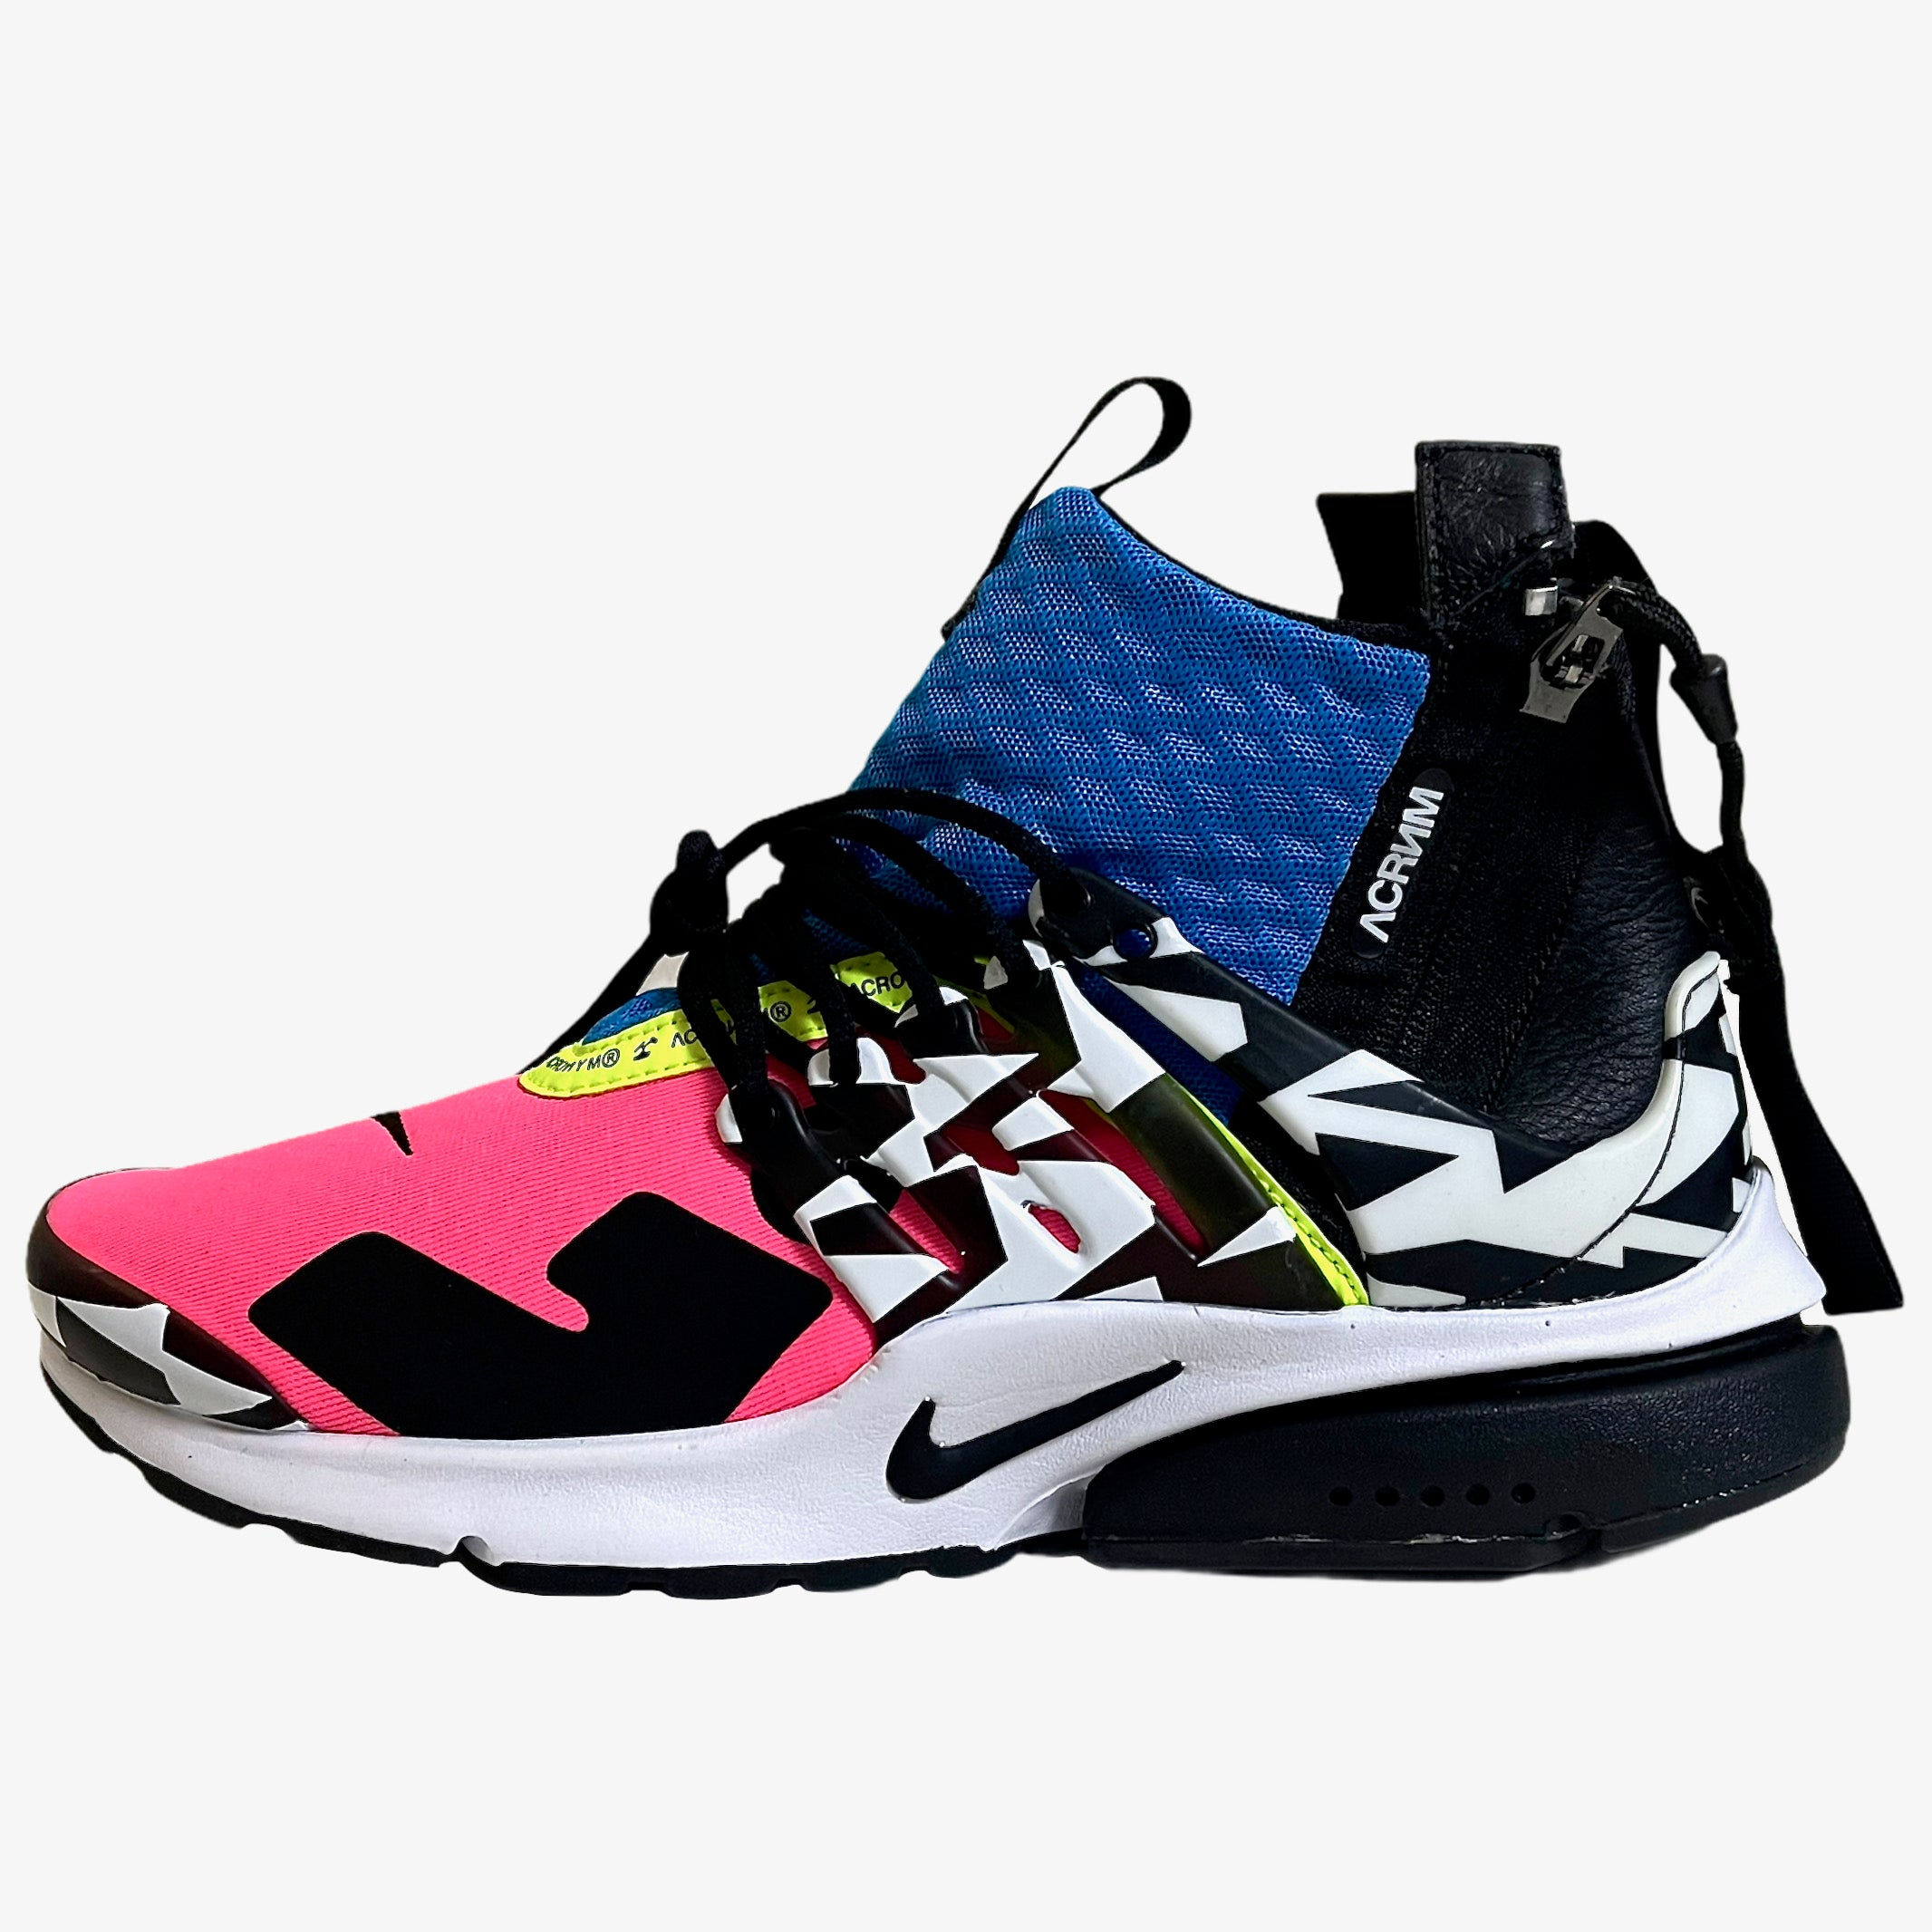 NIKE AIR PRESTO MID ACRONYM RACER PINK (7 US MEN)